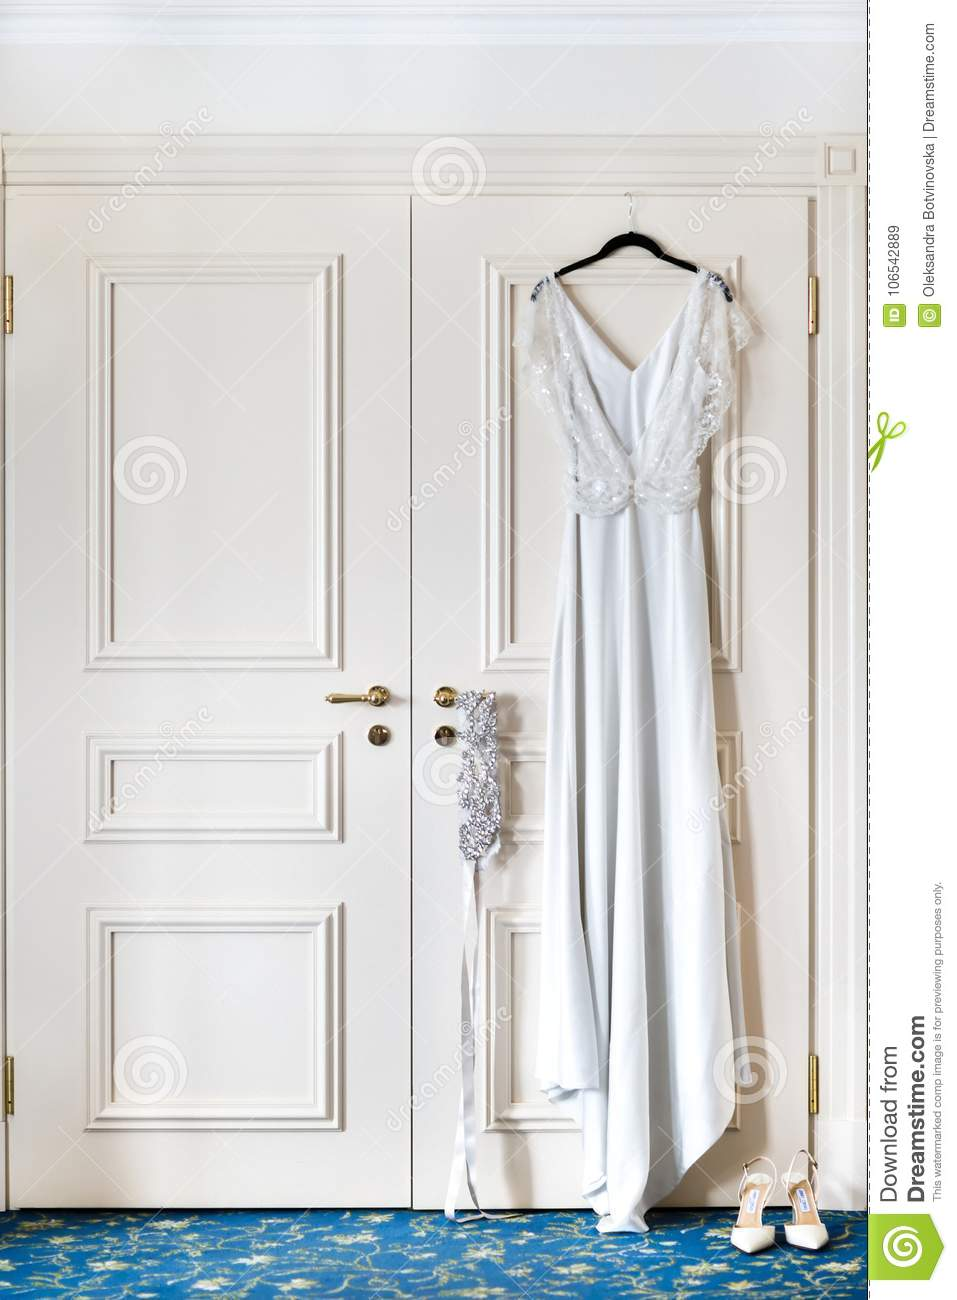 Wedding Dress Hanging On A Hanger In A Hotel Room On The Door Stock Image Image Of Lifestyle Hang 106542889